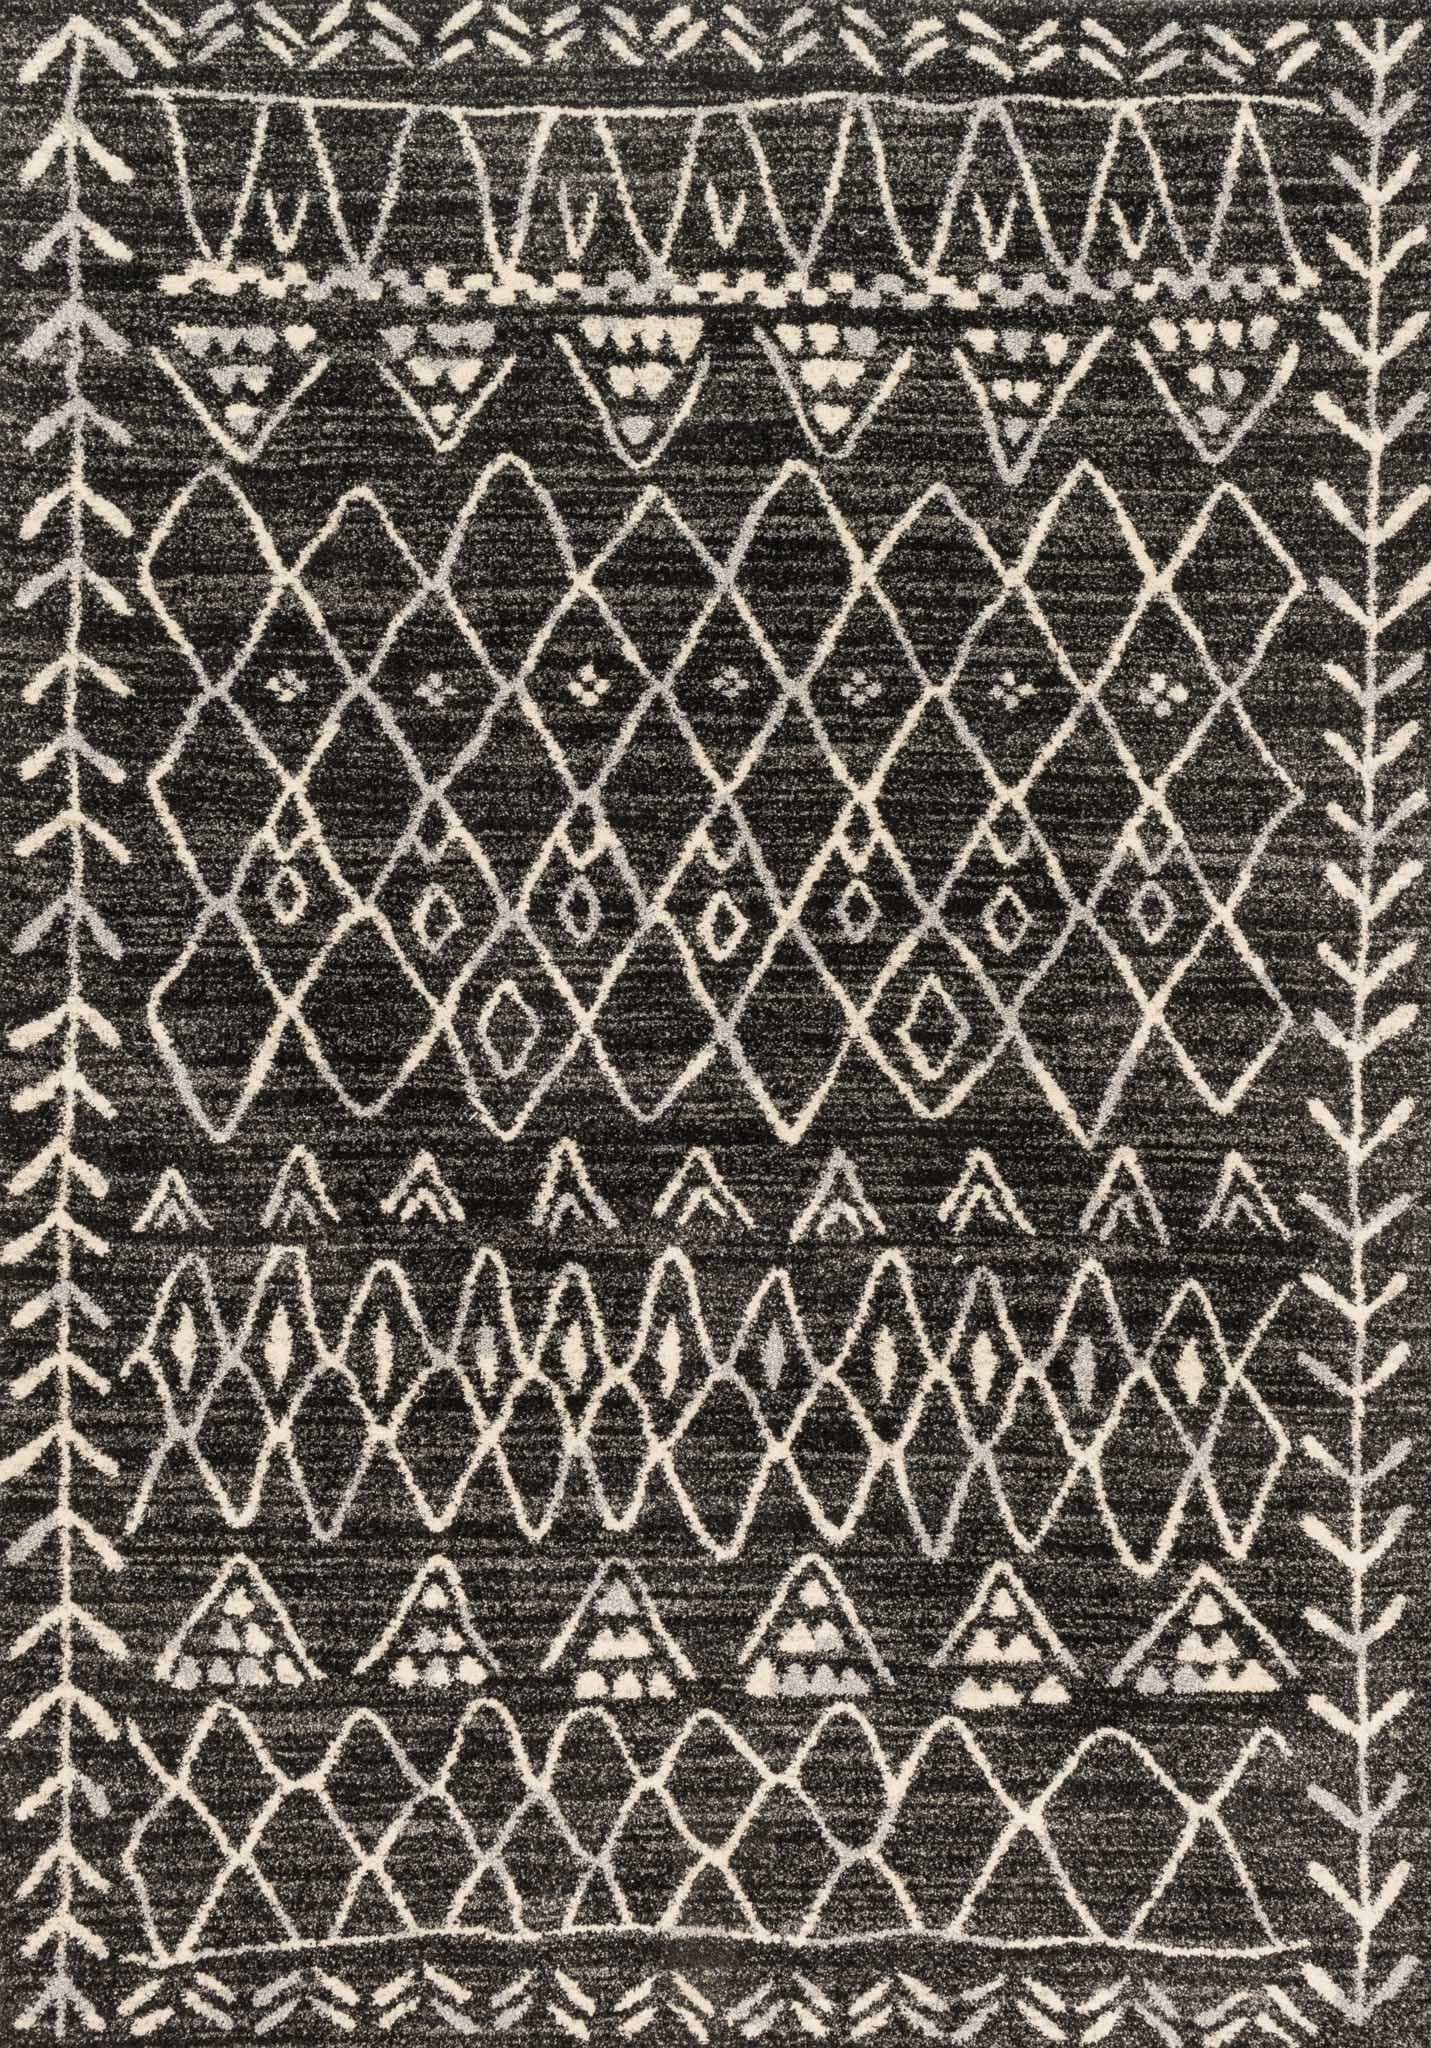 """Loloi Rugs, Emory Collection - Black / Ivory Area Rug, 2'5"""" x 7'7"""" - Power loomed in Turkey of 100% polypropylene, the Emory Collections offers a series of graphic, transitional and traditional designs A calming neutral palette is a seamless, yet striking addition for any room Durable and dependable, Emory is a beautiful foundation for even the most high traffic spots. And the polypropylene fiber is extremely stain resistant, fade resistant and easy to clean - living-room-soft-furnishings, living-room, area-rugs - A1Z4ZCQSJZL -"""